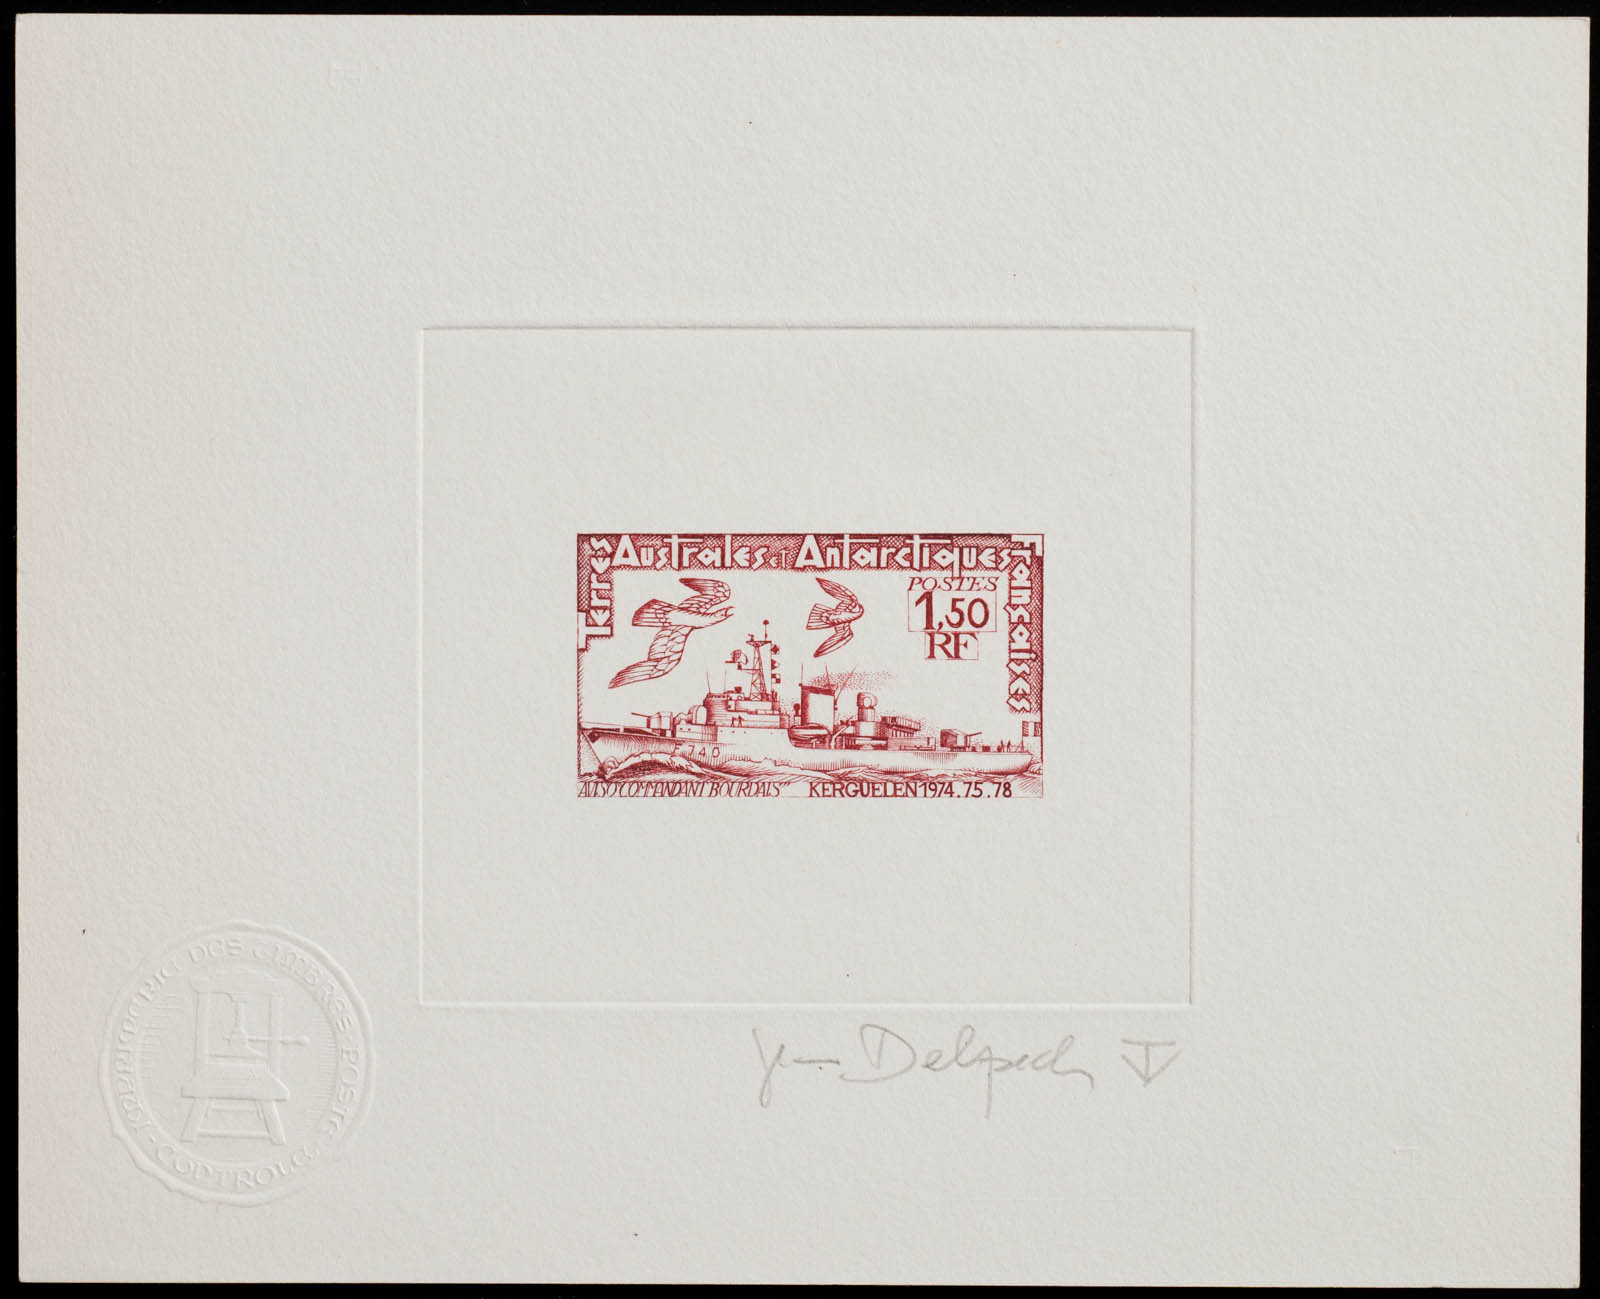 French Antarctic Bourdais Stamp Artist's Proof